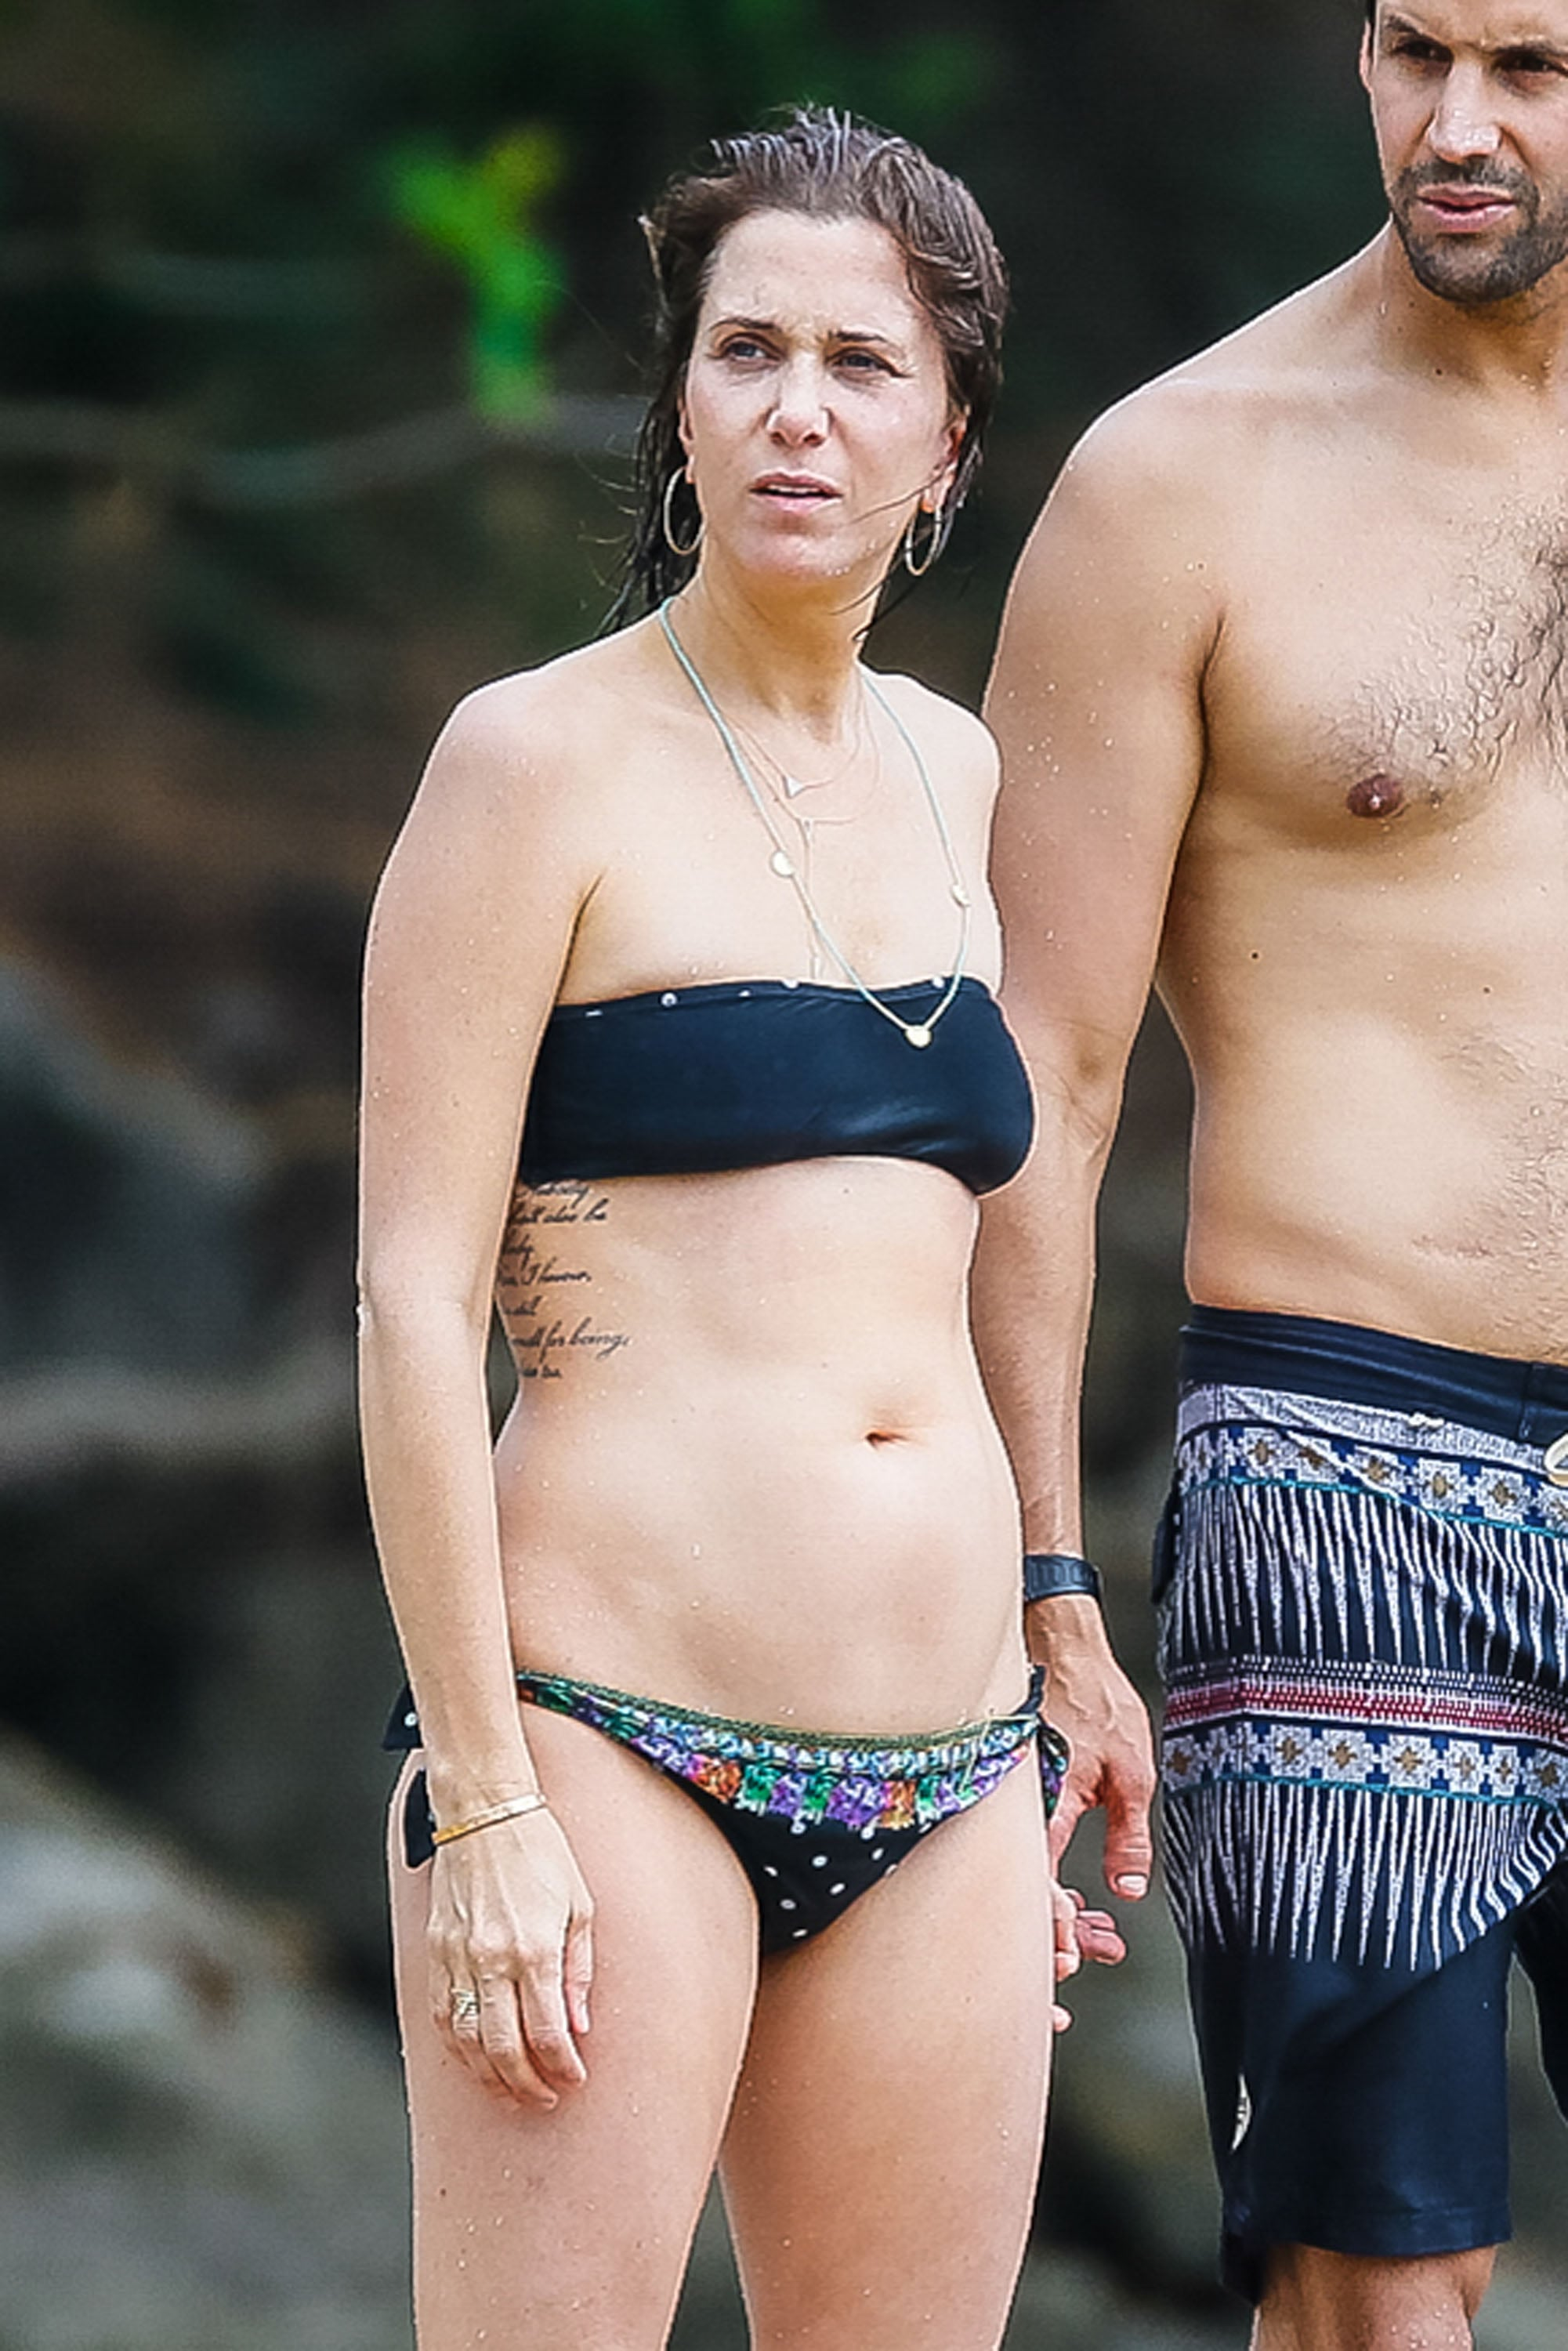 Kristen-Wiig-escaped-Hawaii-romantic-vacation-her